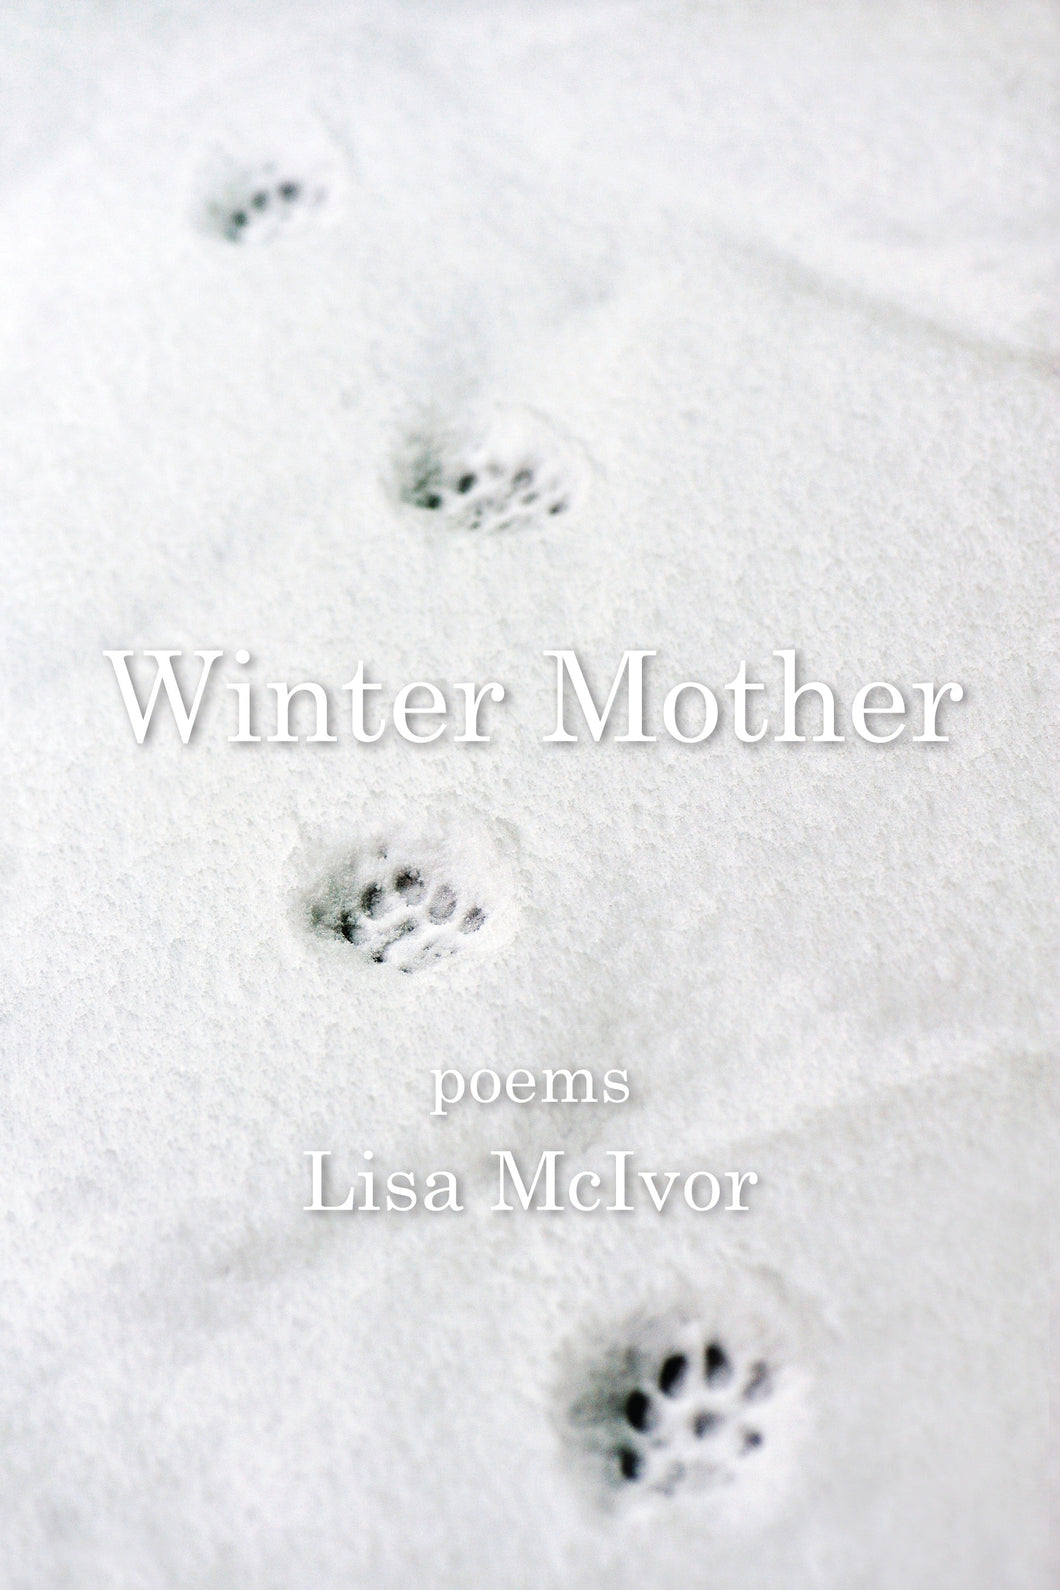 Winter Mother